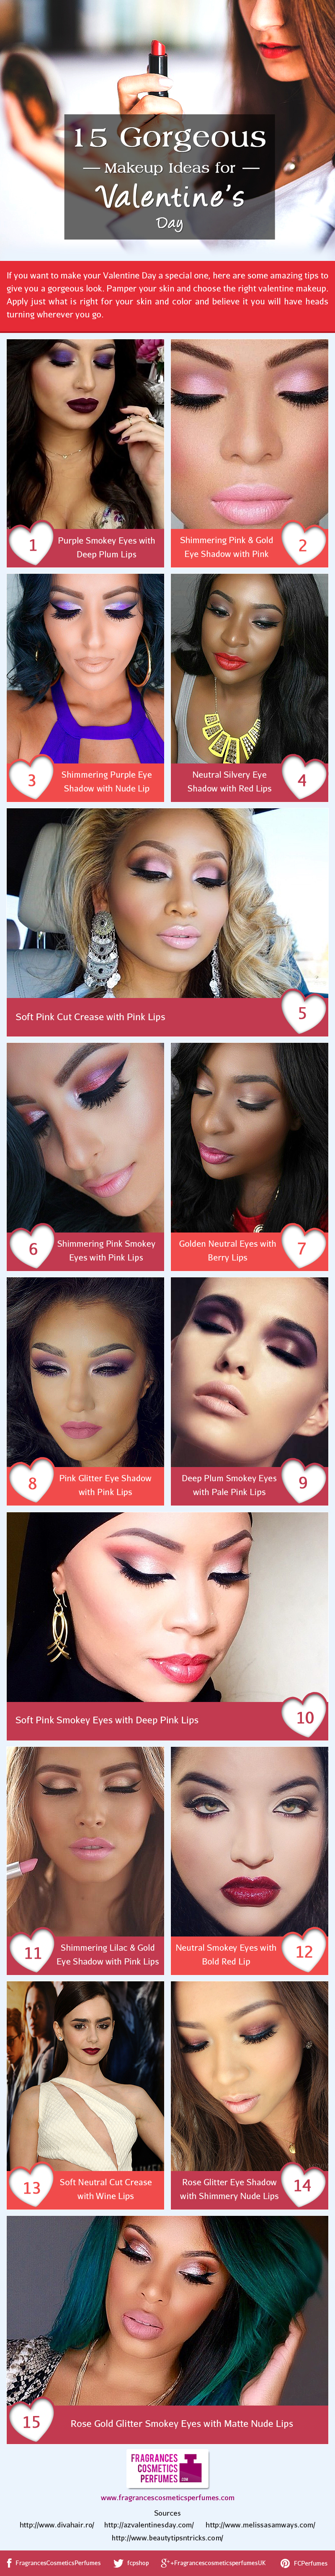 15 Gorgeous Makeup ideas for Valentine's Day